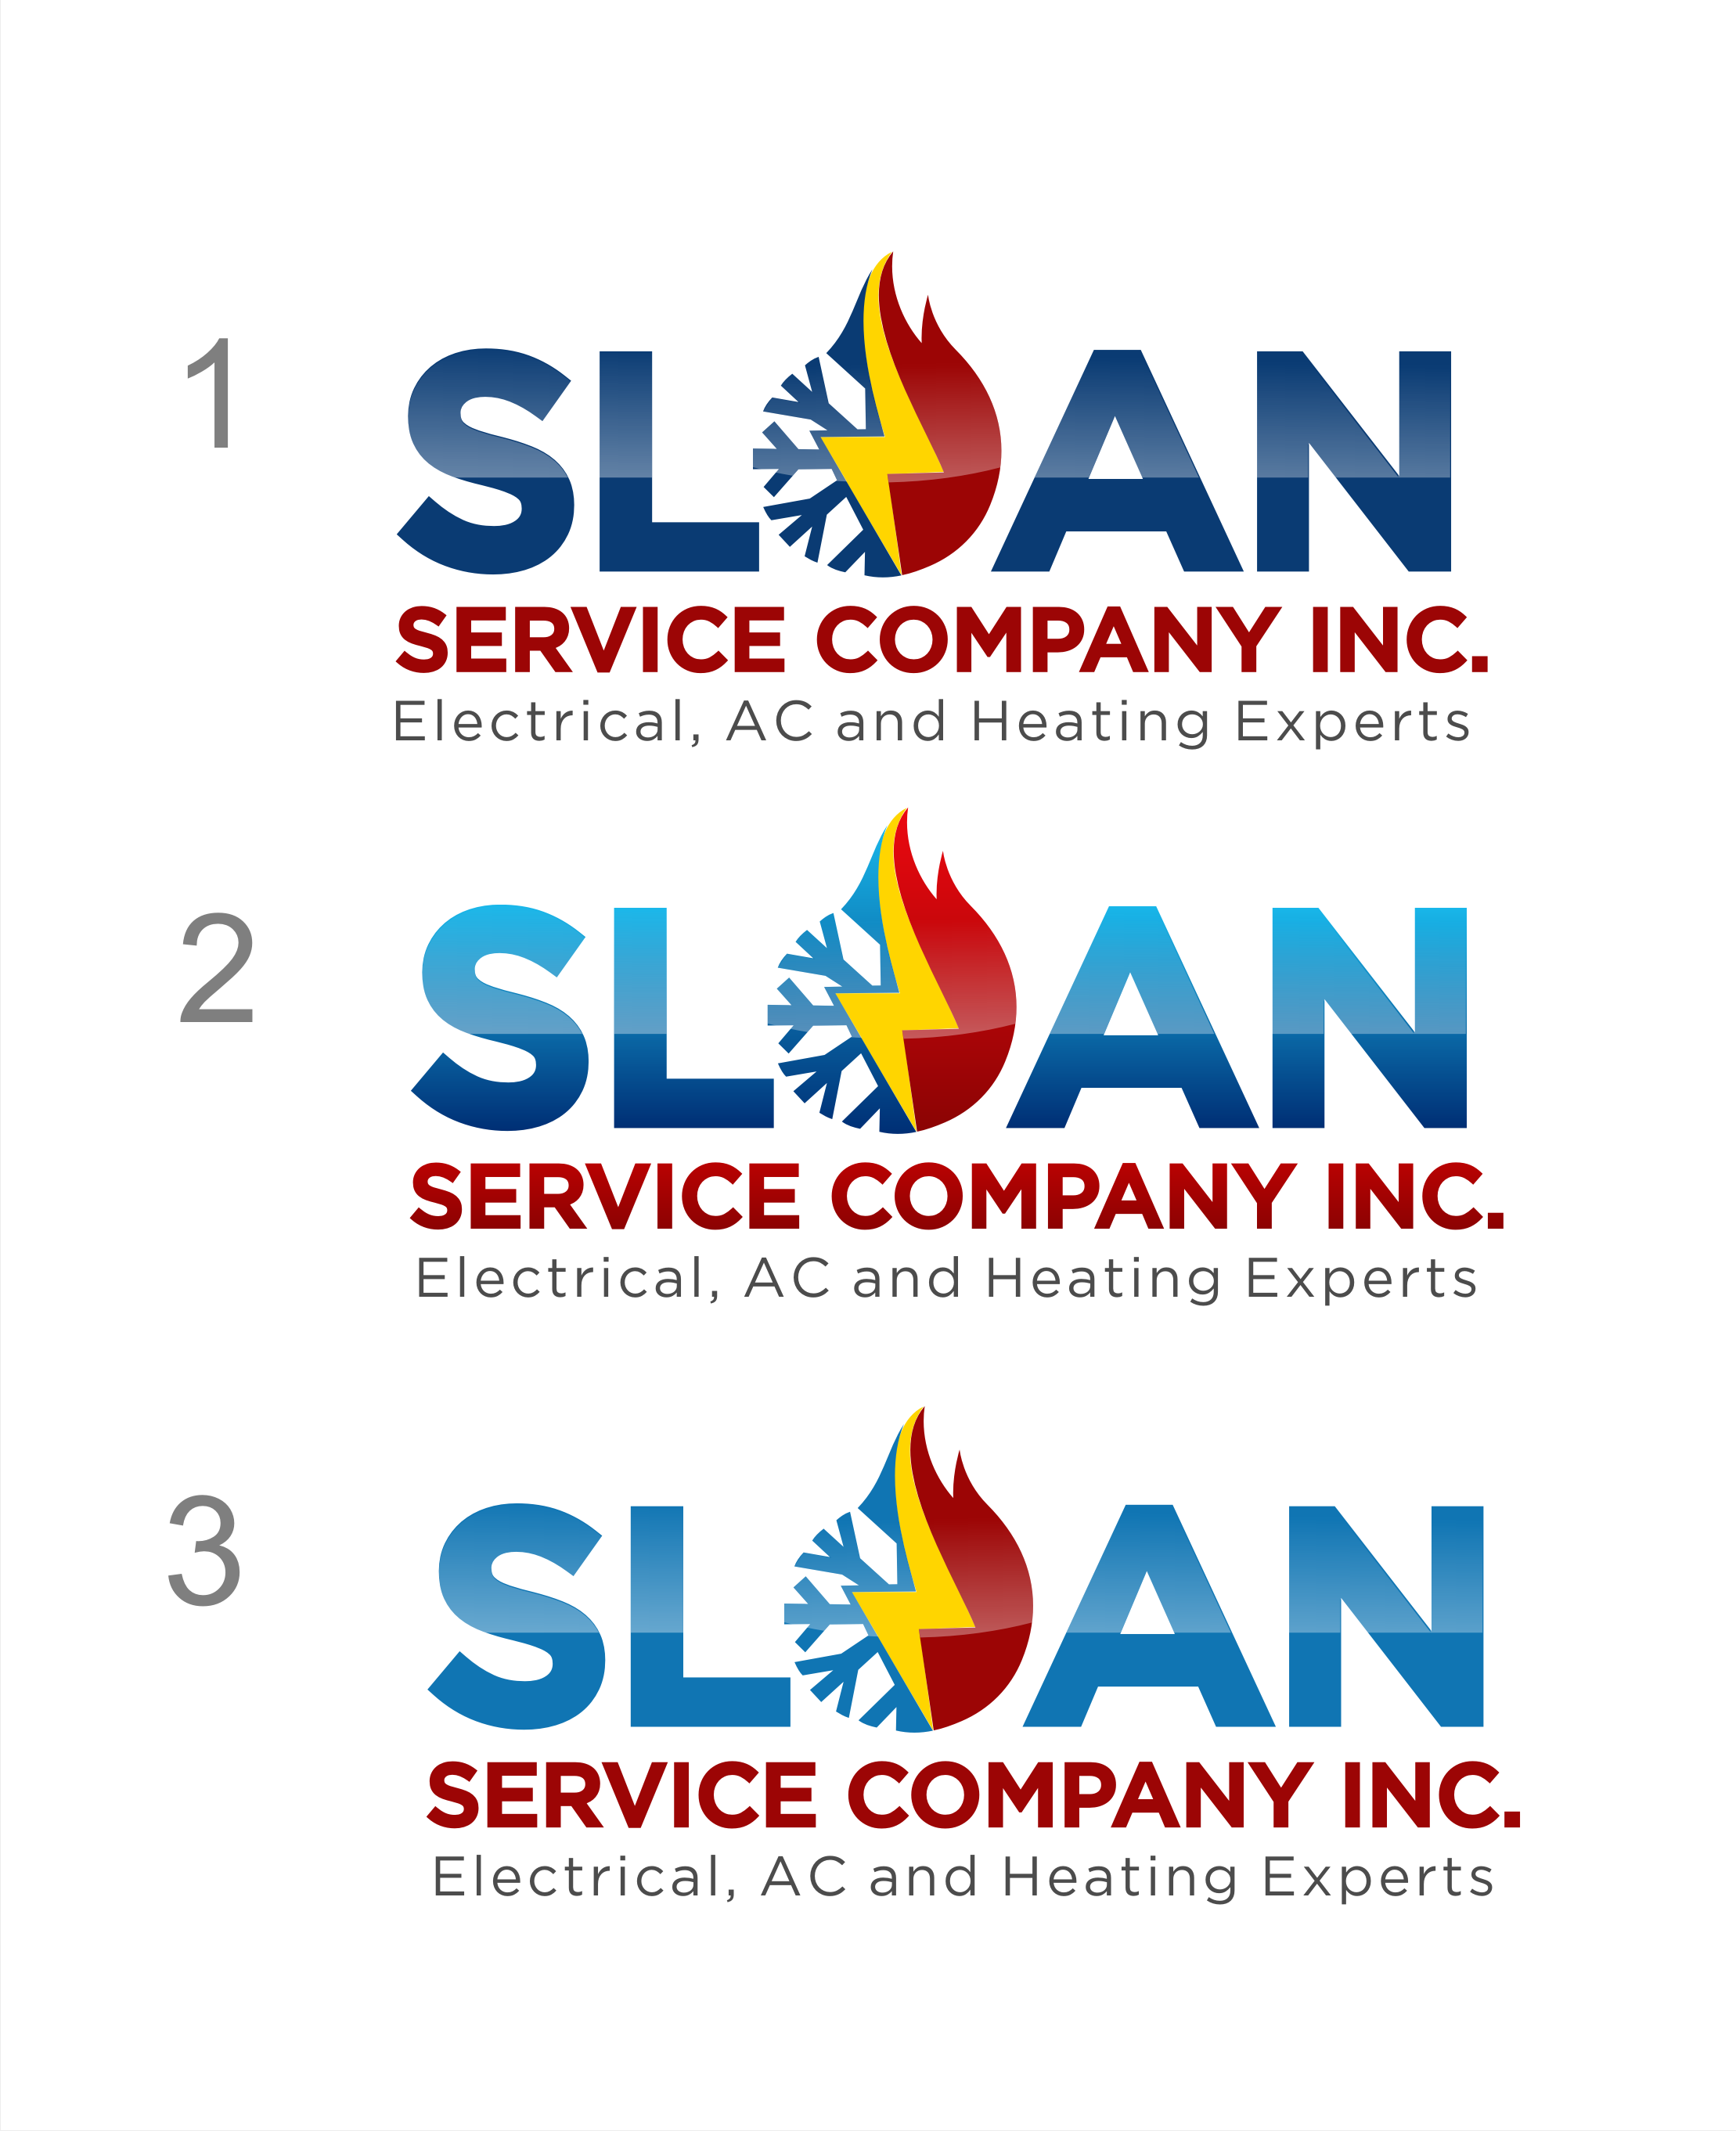 Electrician Re-Branding Project for Sloan Service Company, Inc